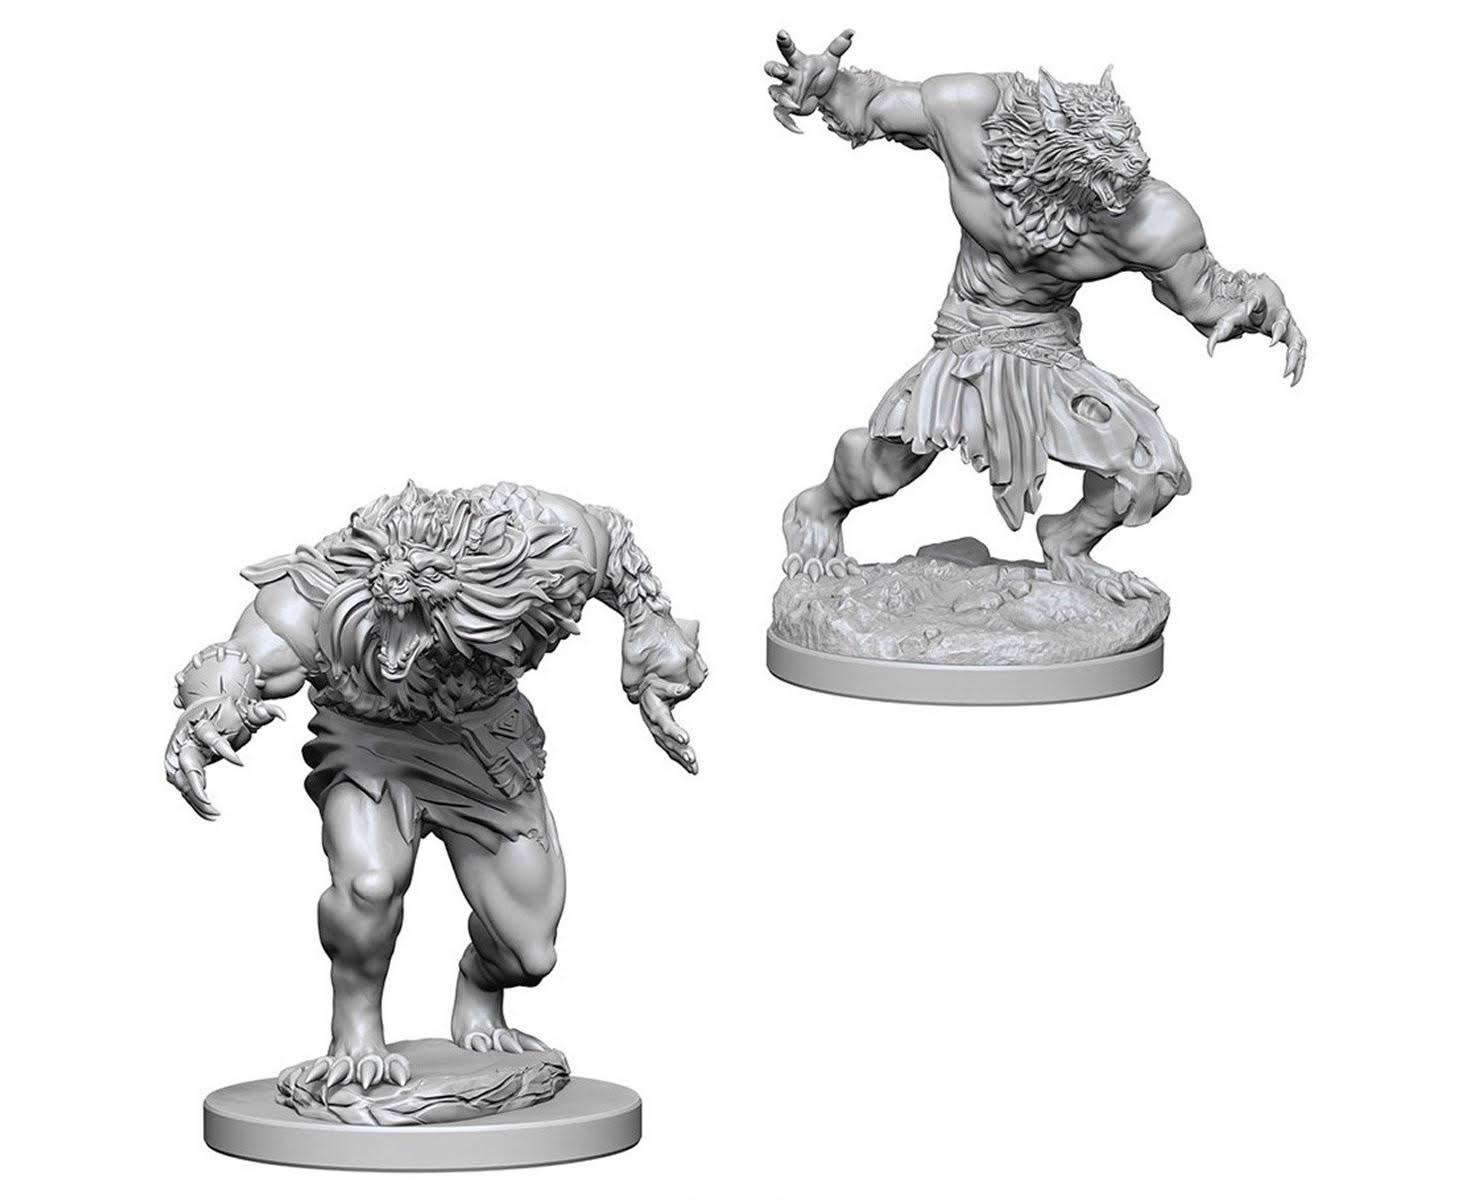 Dungeons and Dragons Nolzur's Marvelous Minis Werewolves Miniatures - Unpainted